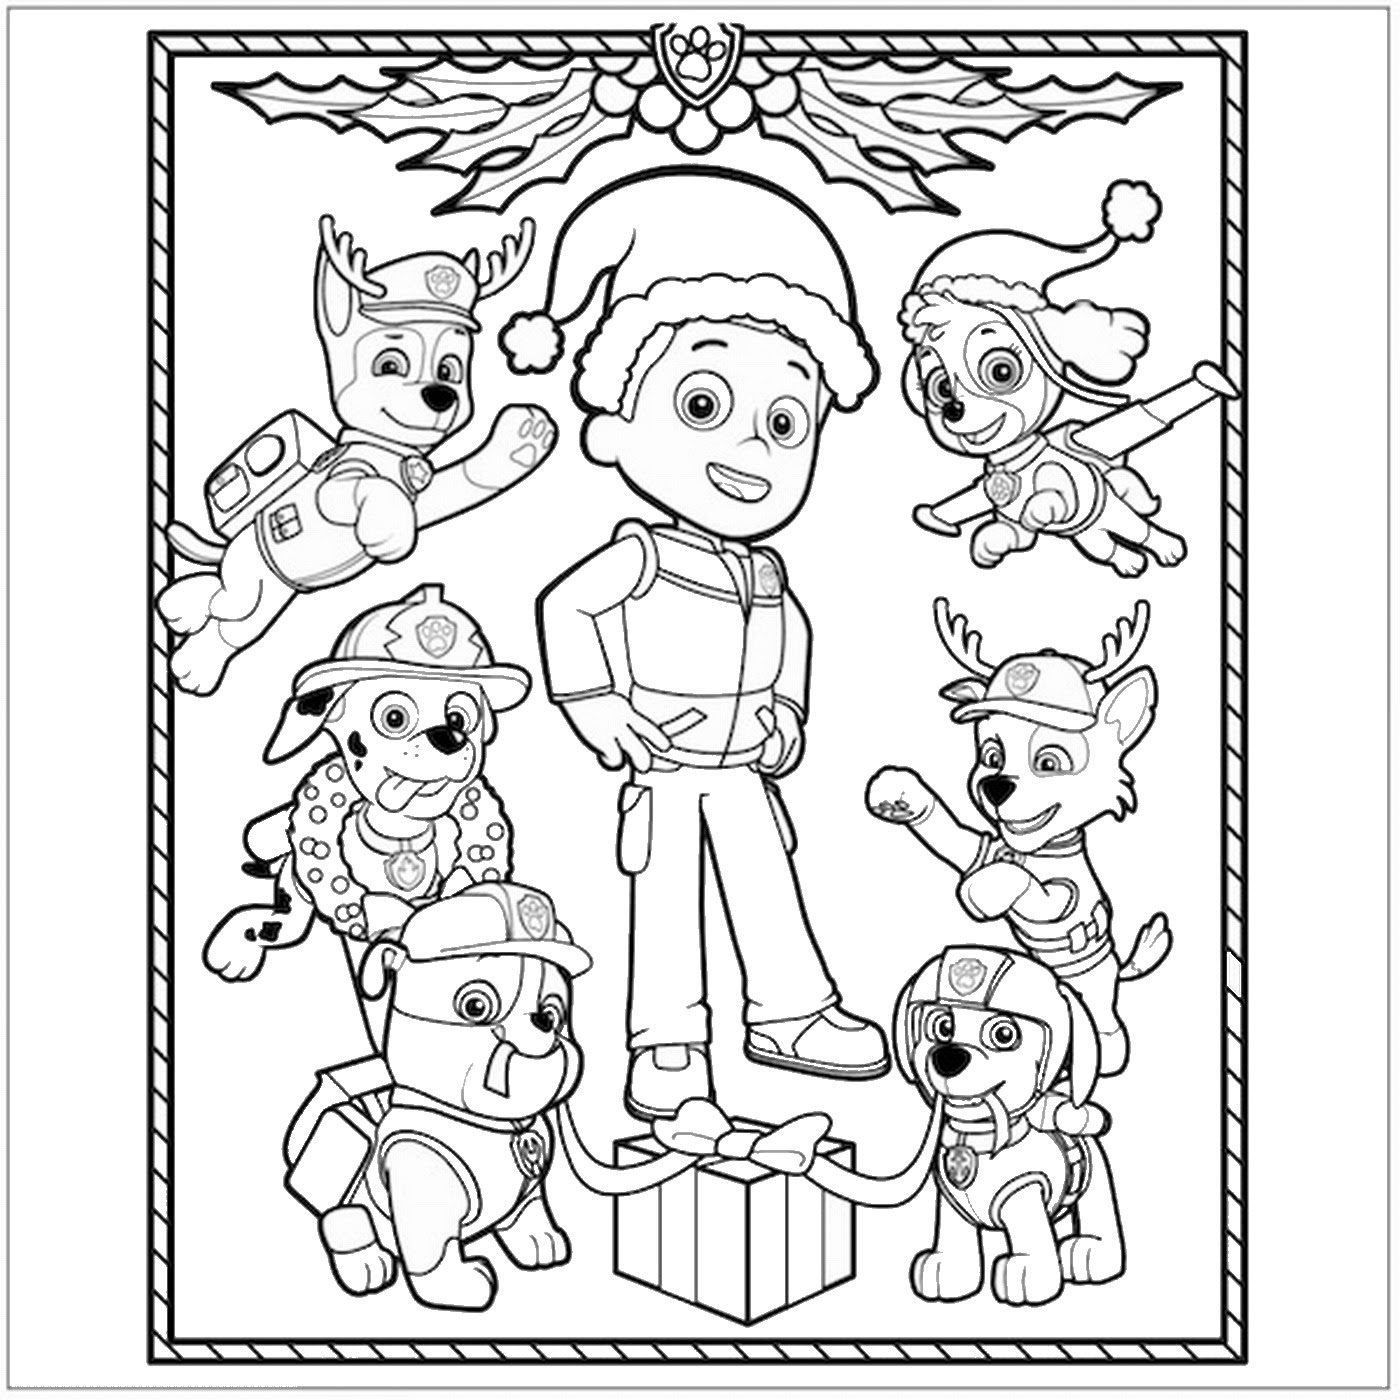 Paw Patrol Coloring Pages | Birthday Printable